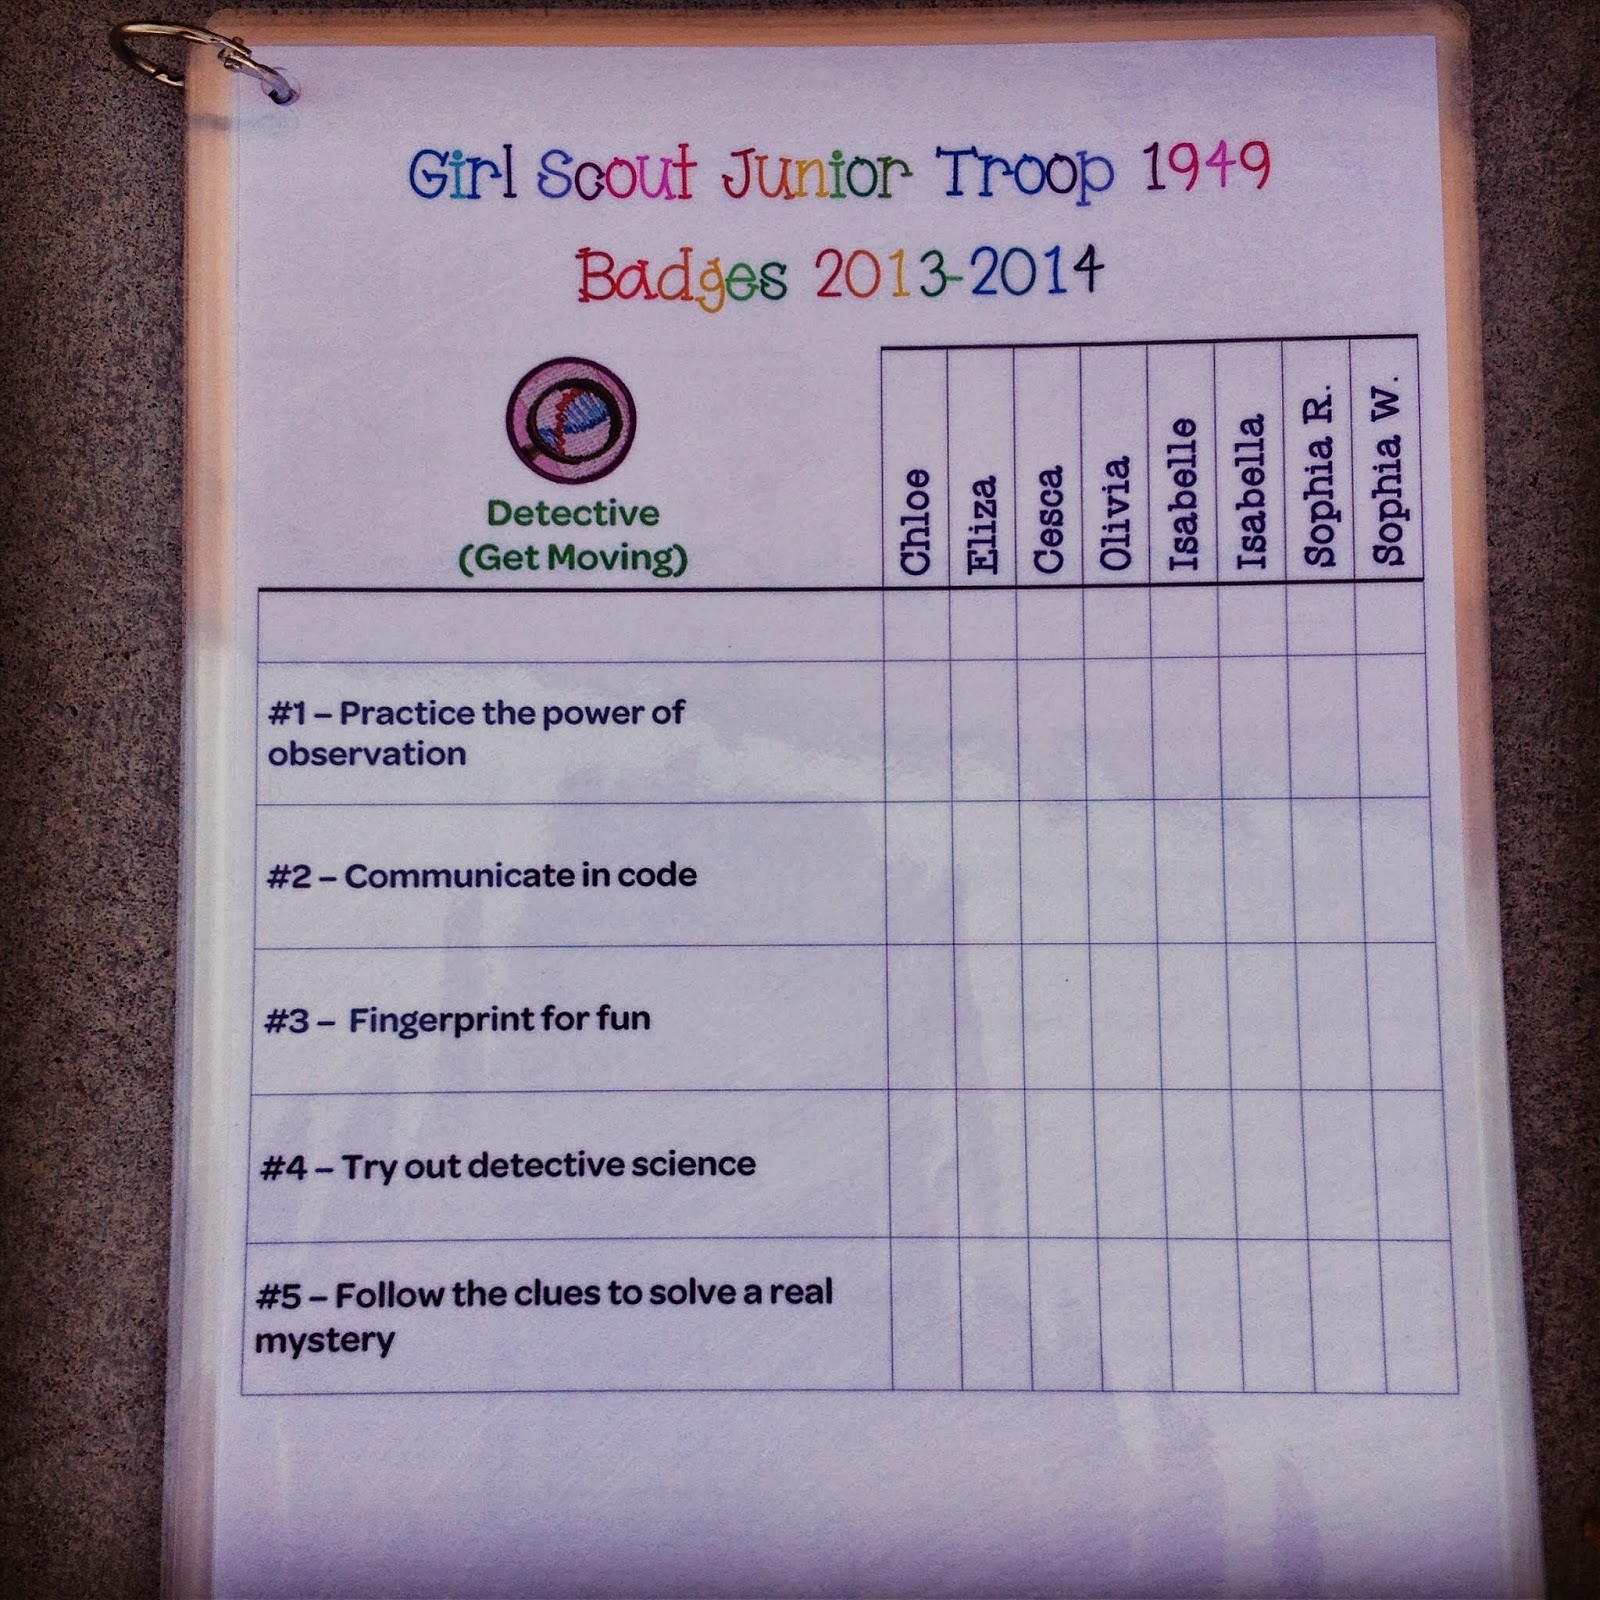 girl scout meeting ideas for juniors The girls ownership of their meetings and activities more information on kaper charts can also be found in all levels of handbooks kapers should be included in the planning process and will be a part of the girl's progression however, even a daisy girl scout can clean up after herself how to make a kaper chart.